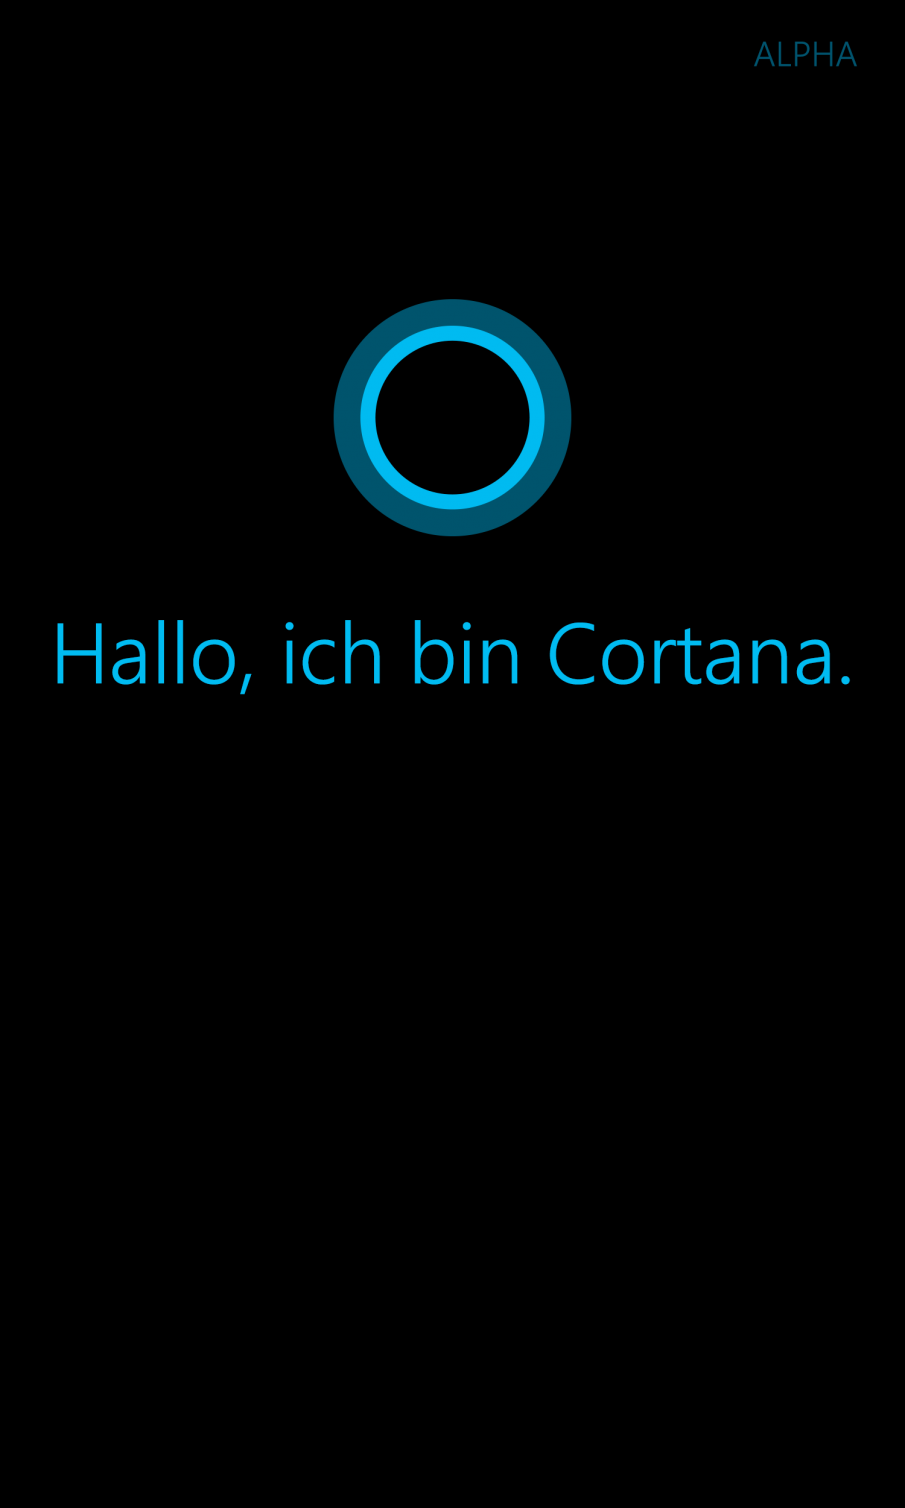 Hallo, ich bin Cortana - Screenshot First Run